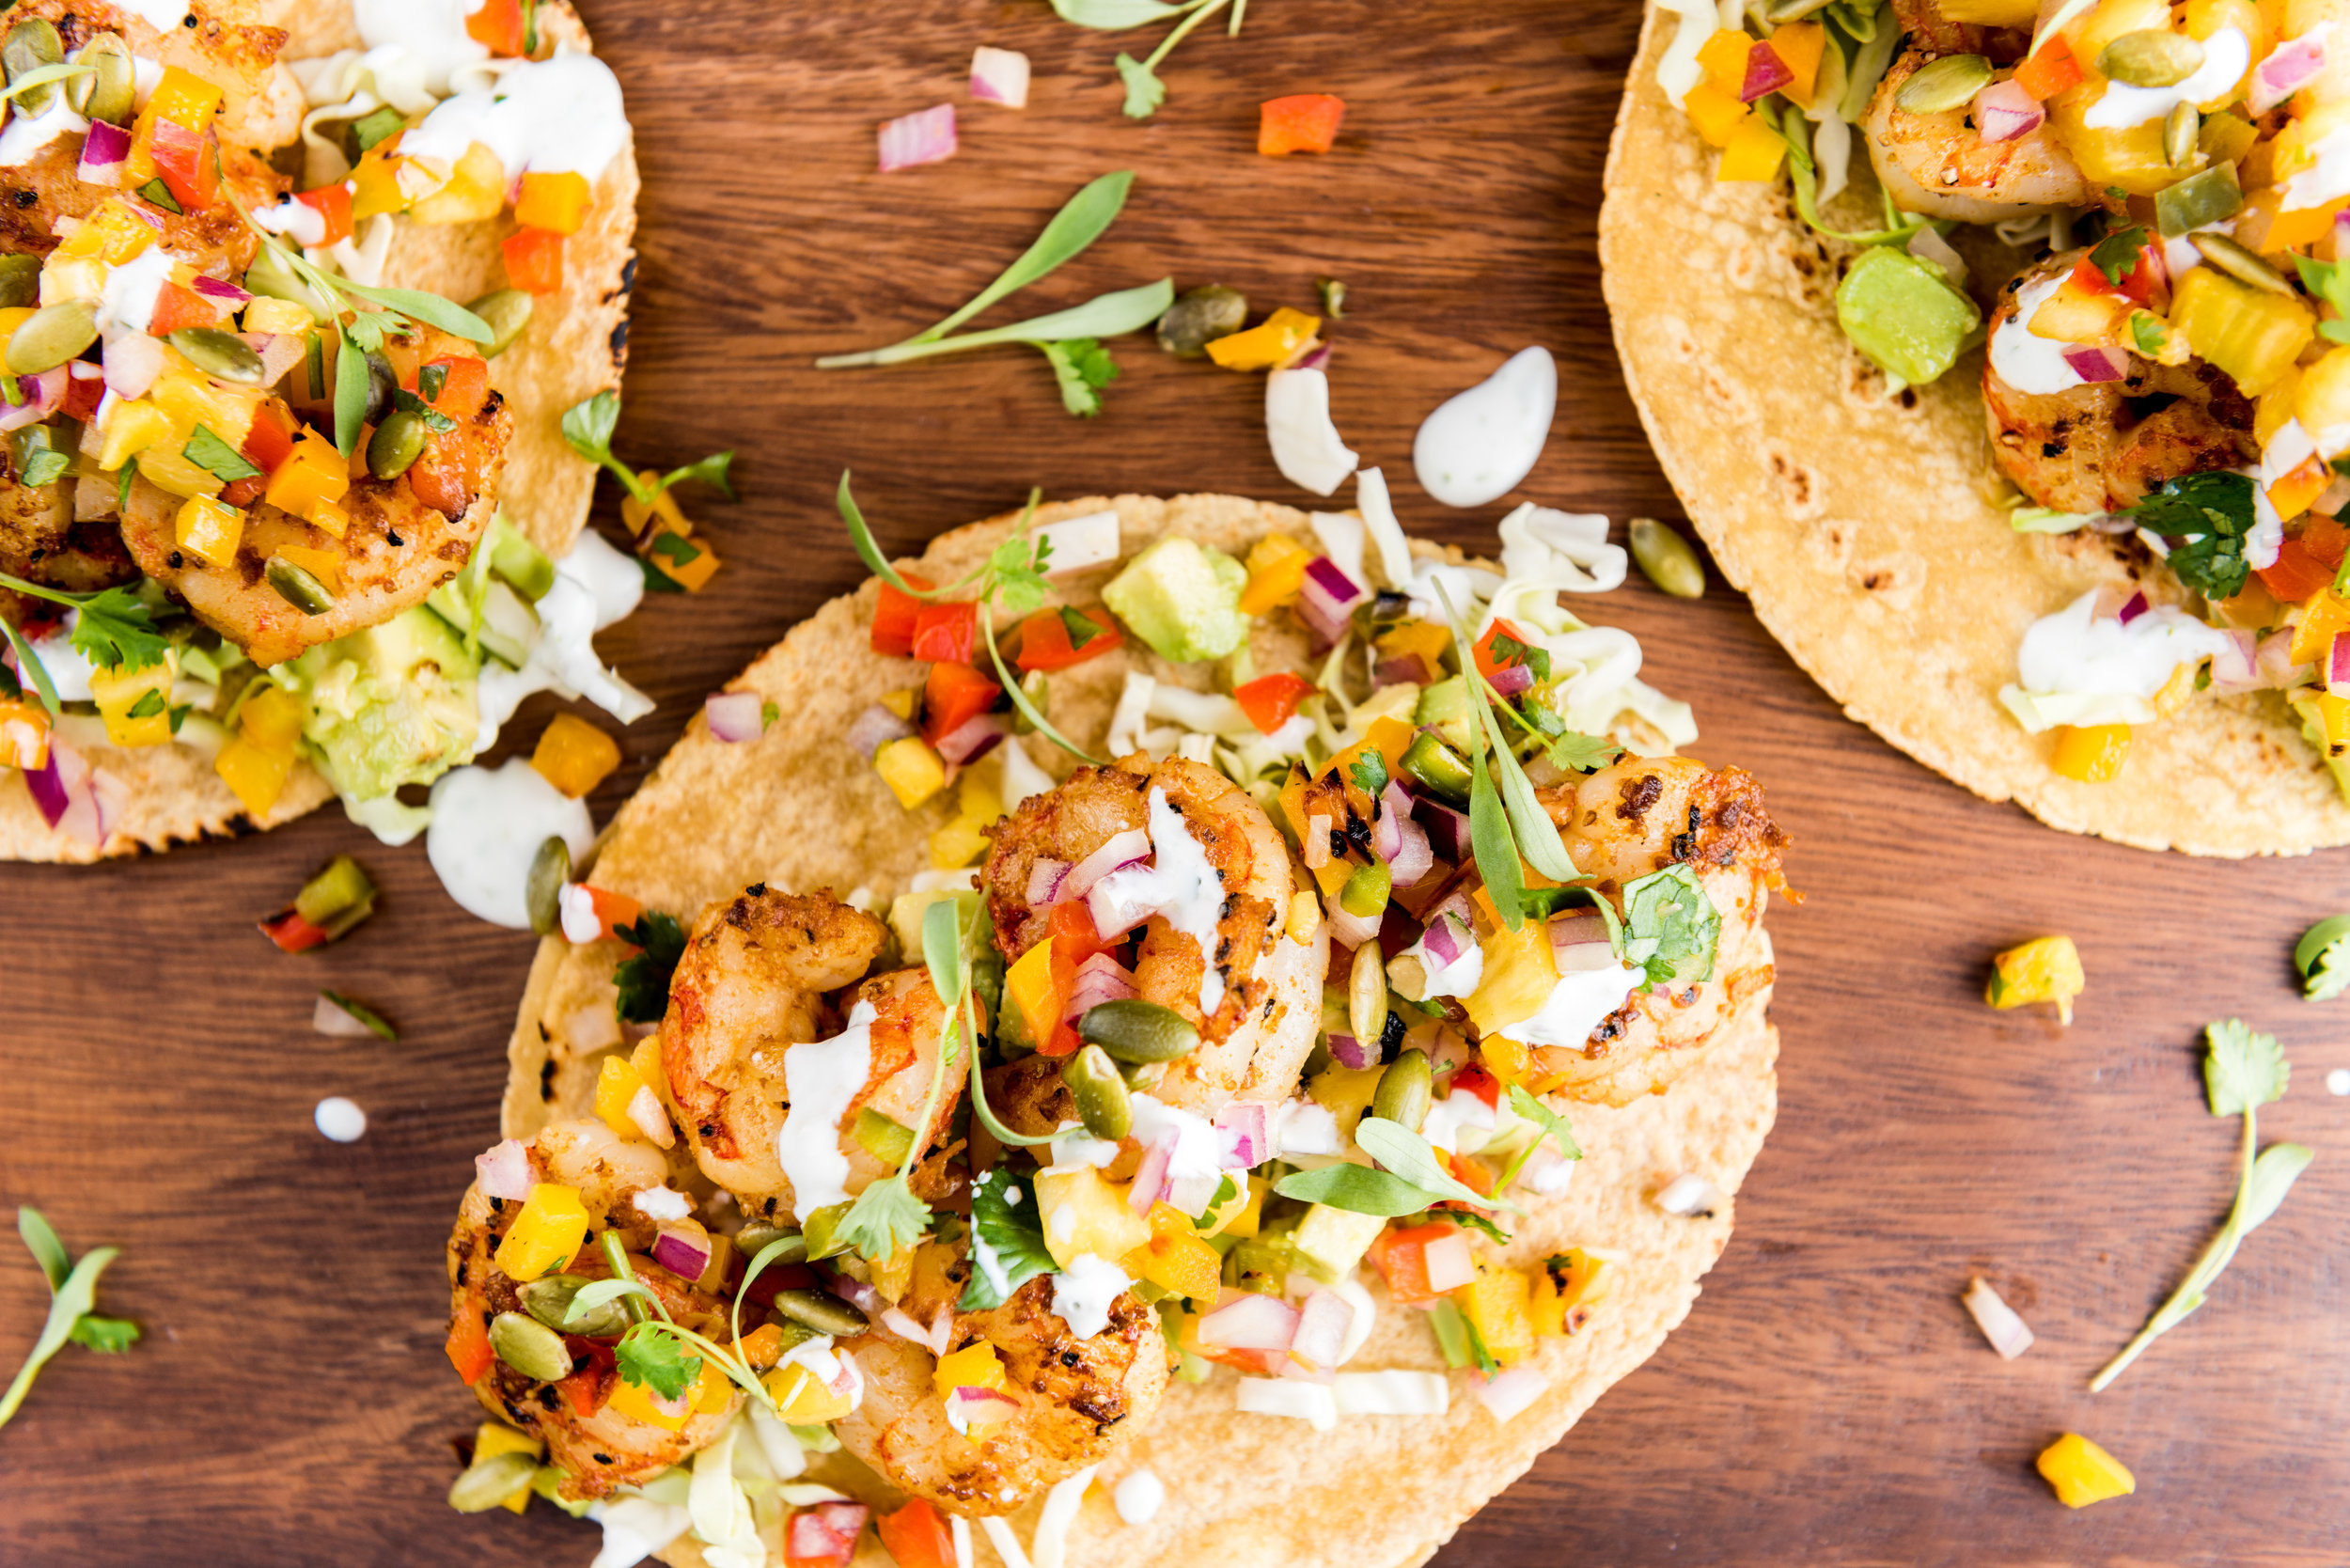 Smokey Shrimp Tacos with Grilled Pineapple Salsa